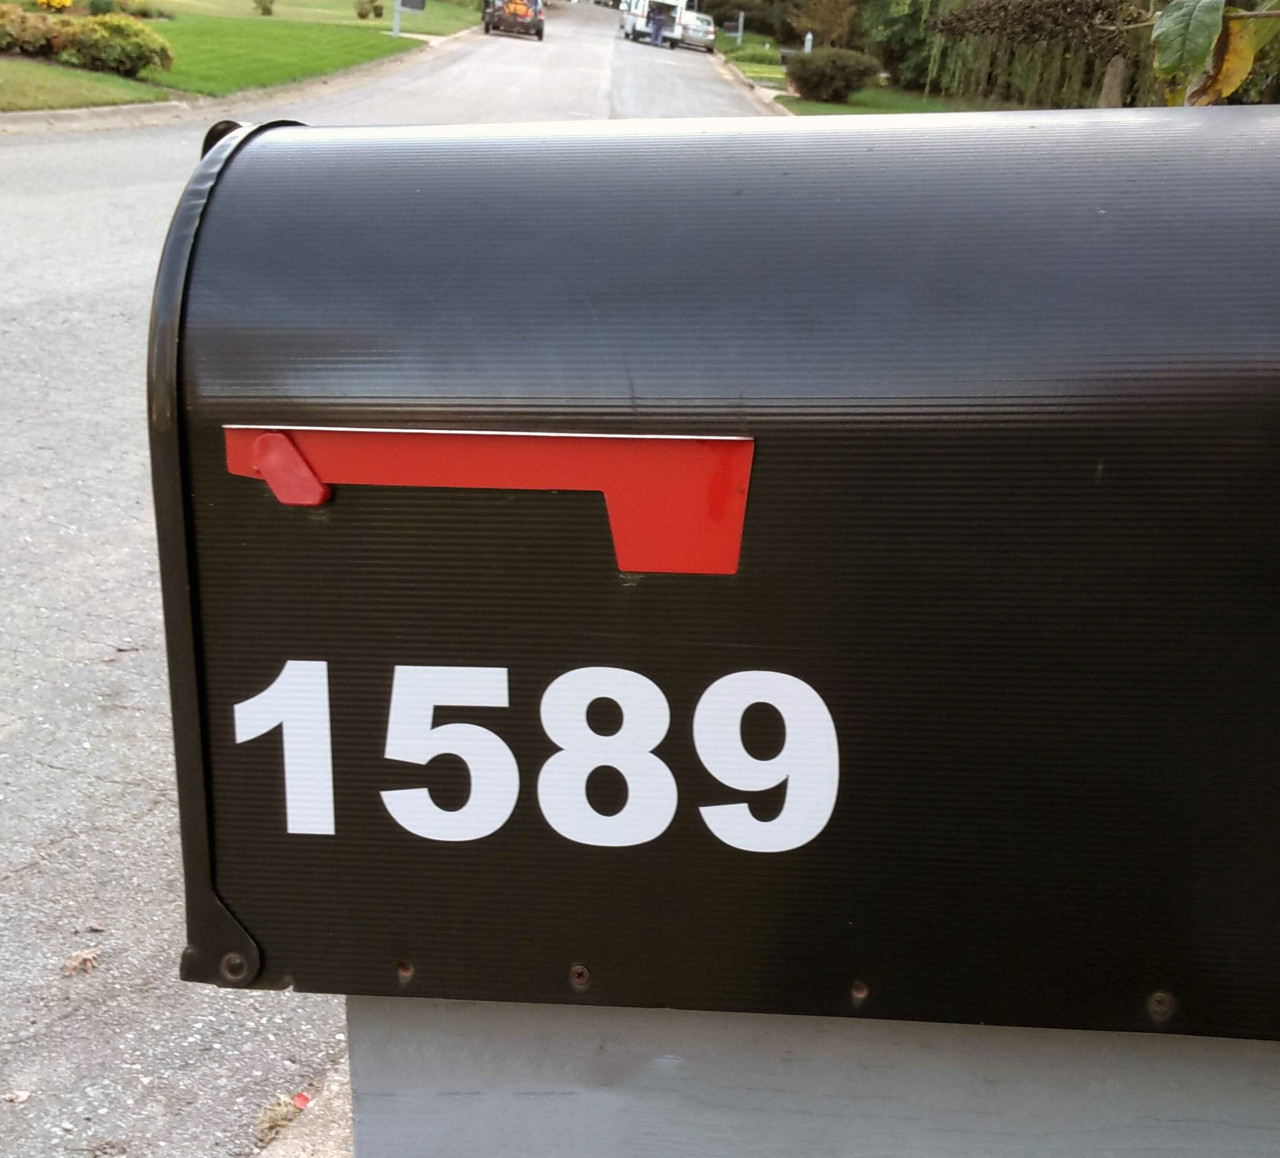 Reflective Mailbox Numbers - Vinyl Decal - House Address Store Office High Visibility - Die Cut